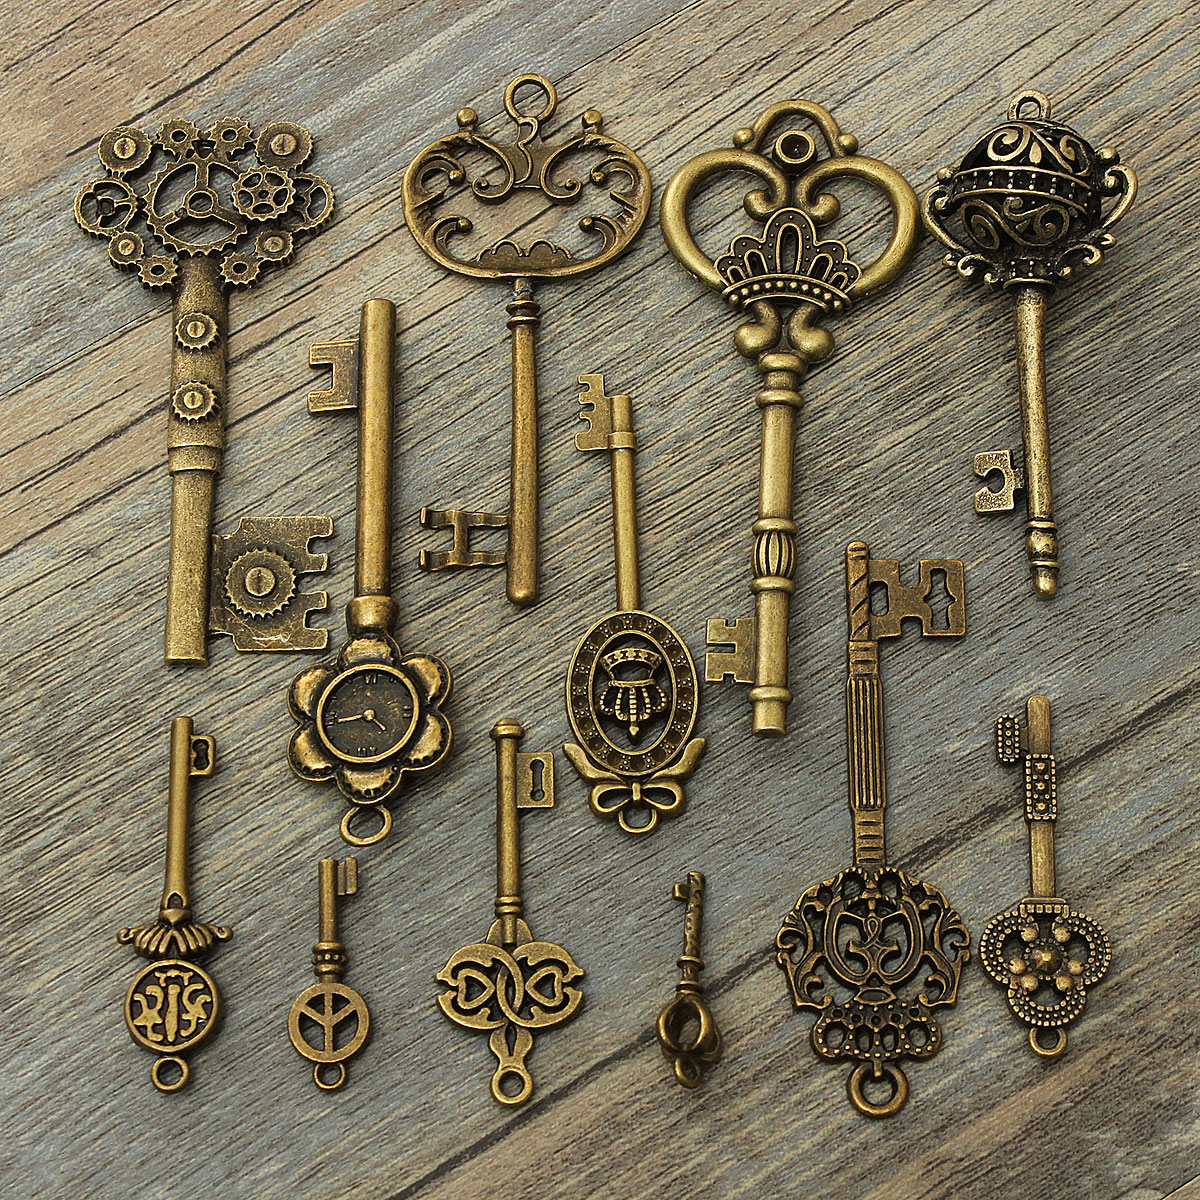 steampunk schl ssel mix halskette kette anh nger schmuck deko diy retro 9 typ ebay. Black Bedroom Furniture Sets. Home Design Ideas